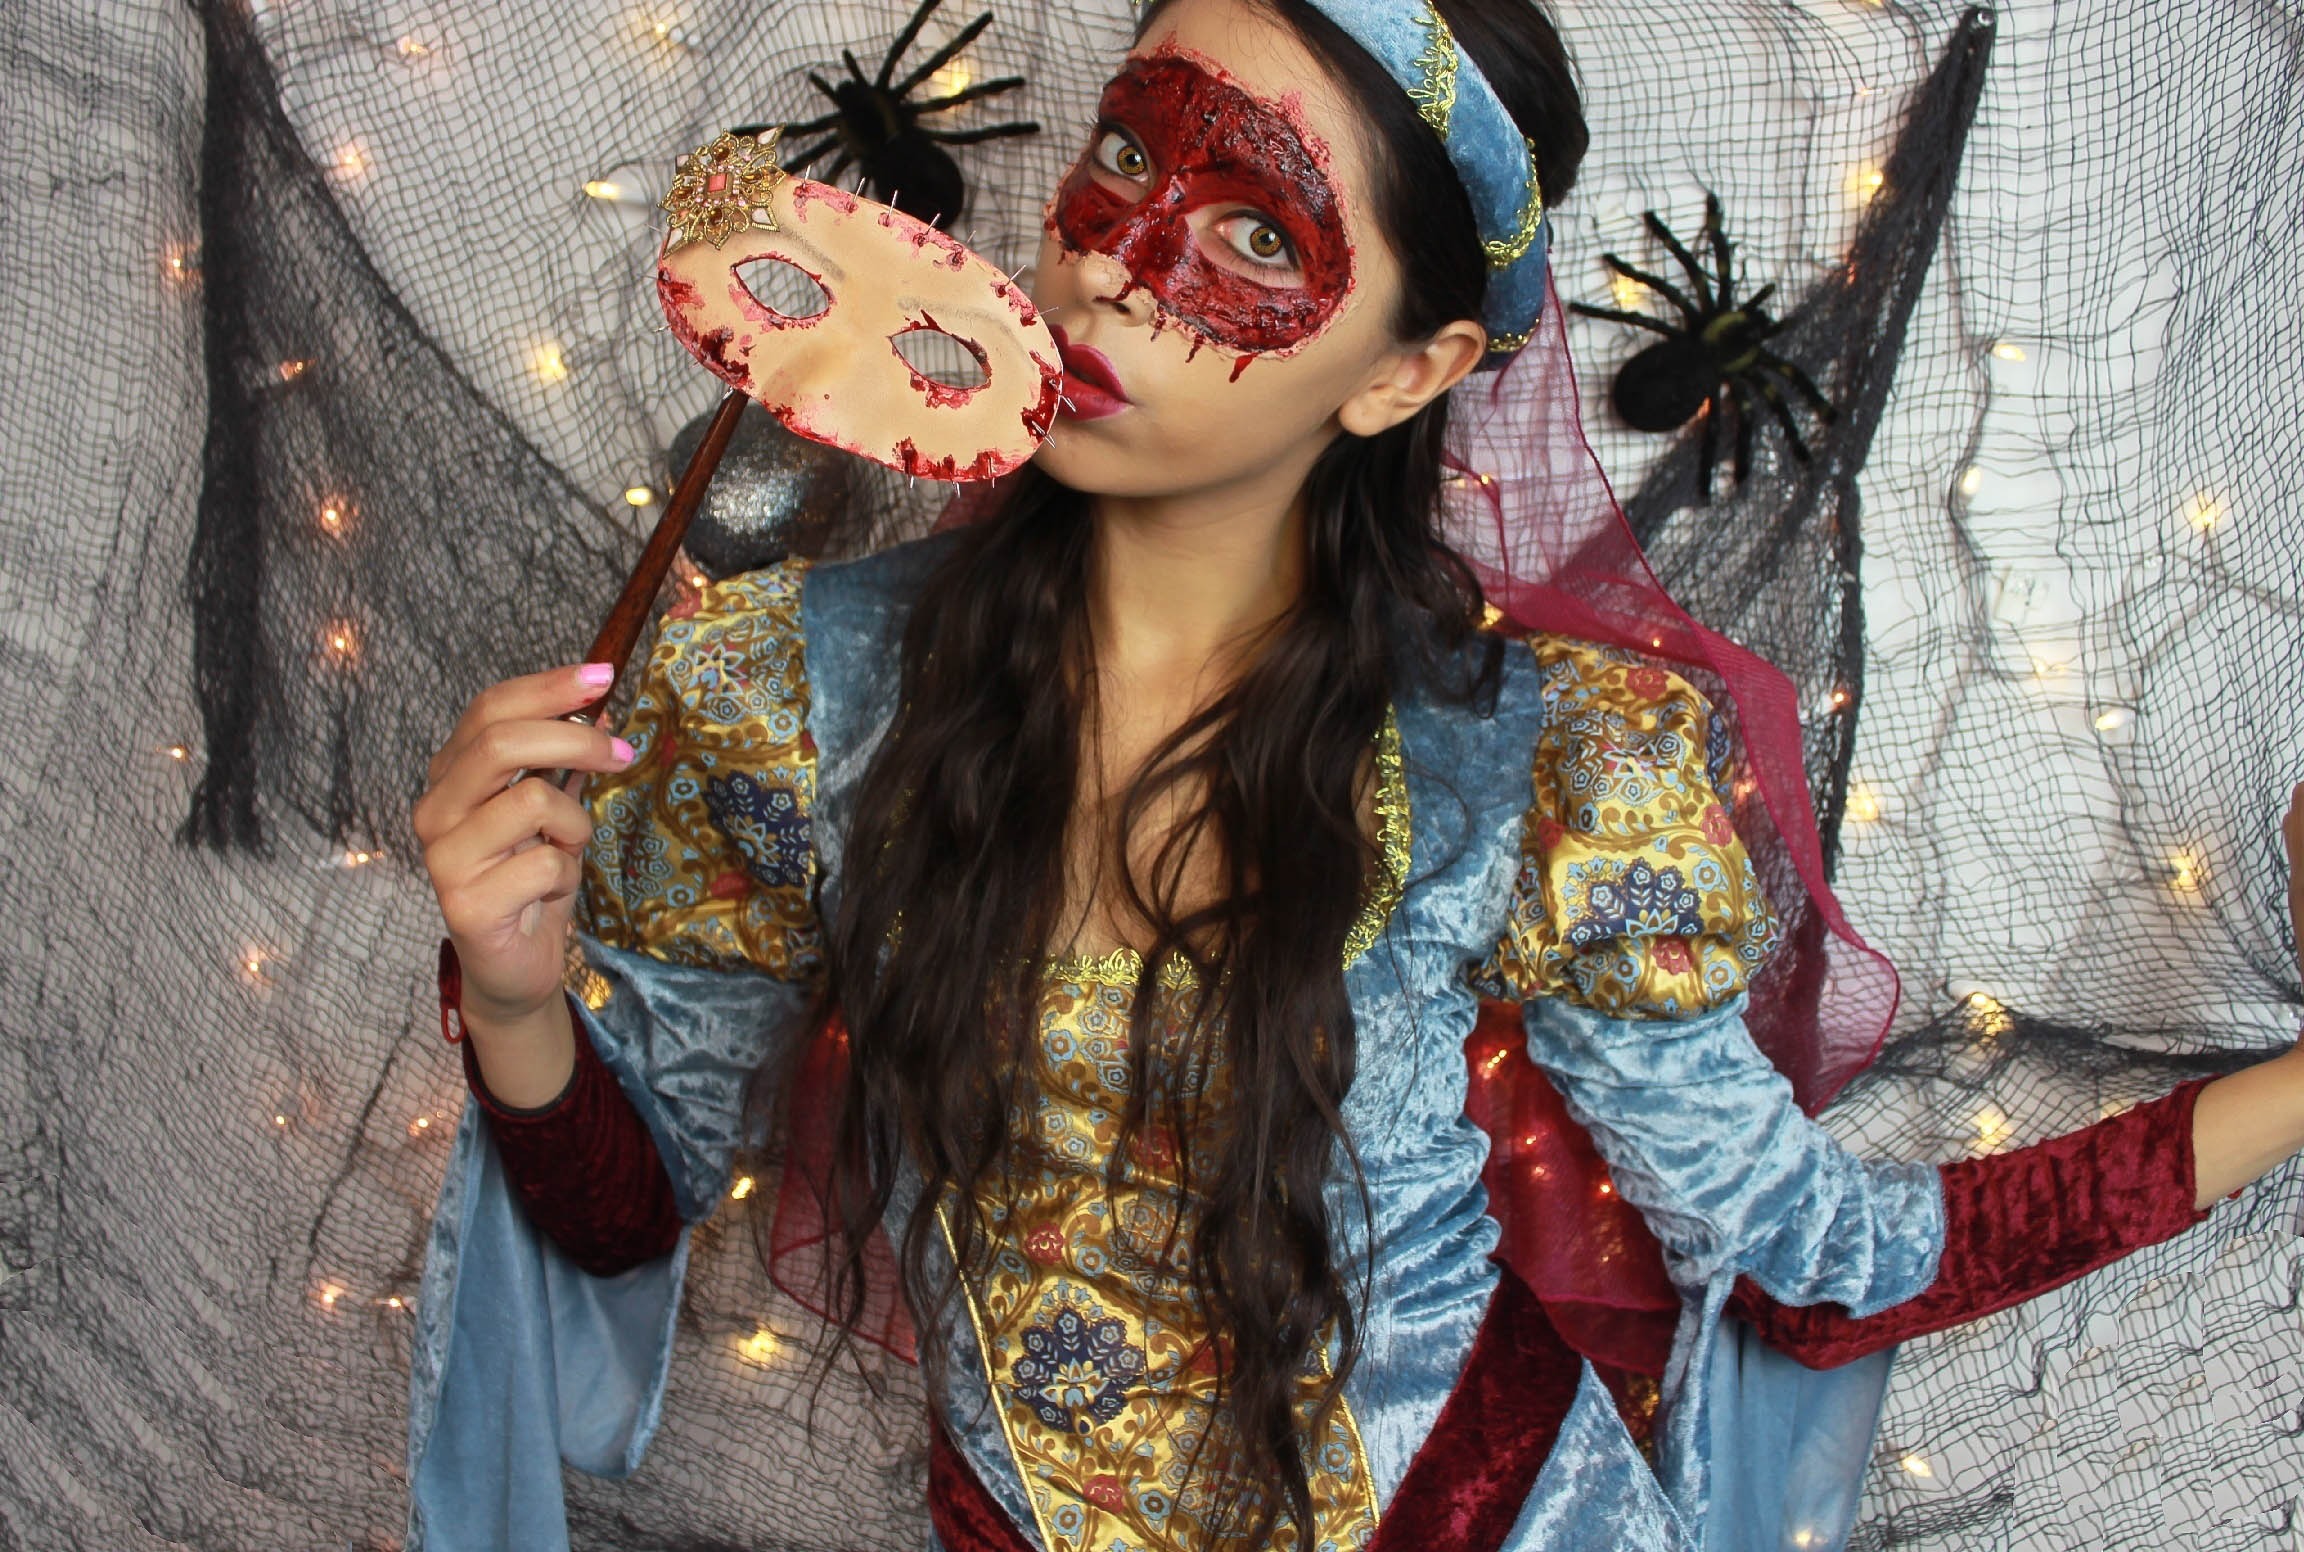 Mad Masquerade Halloween Party Theme Halloween Costume Ideas